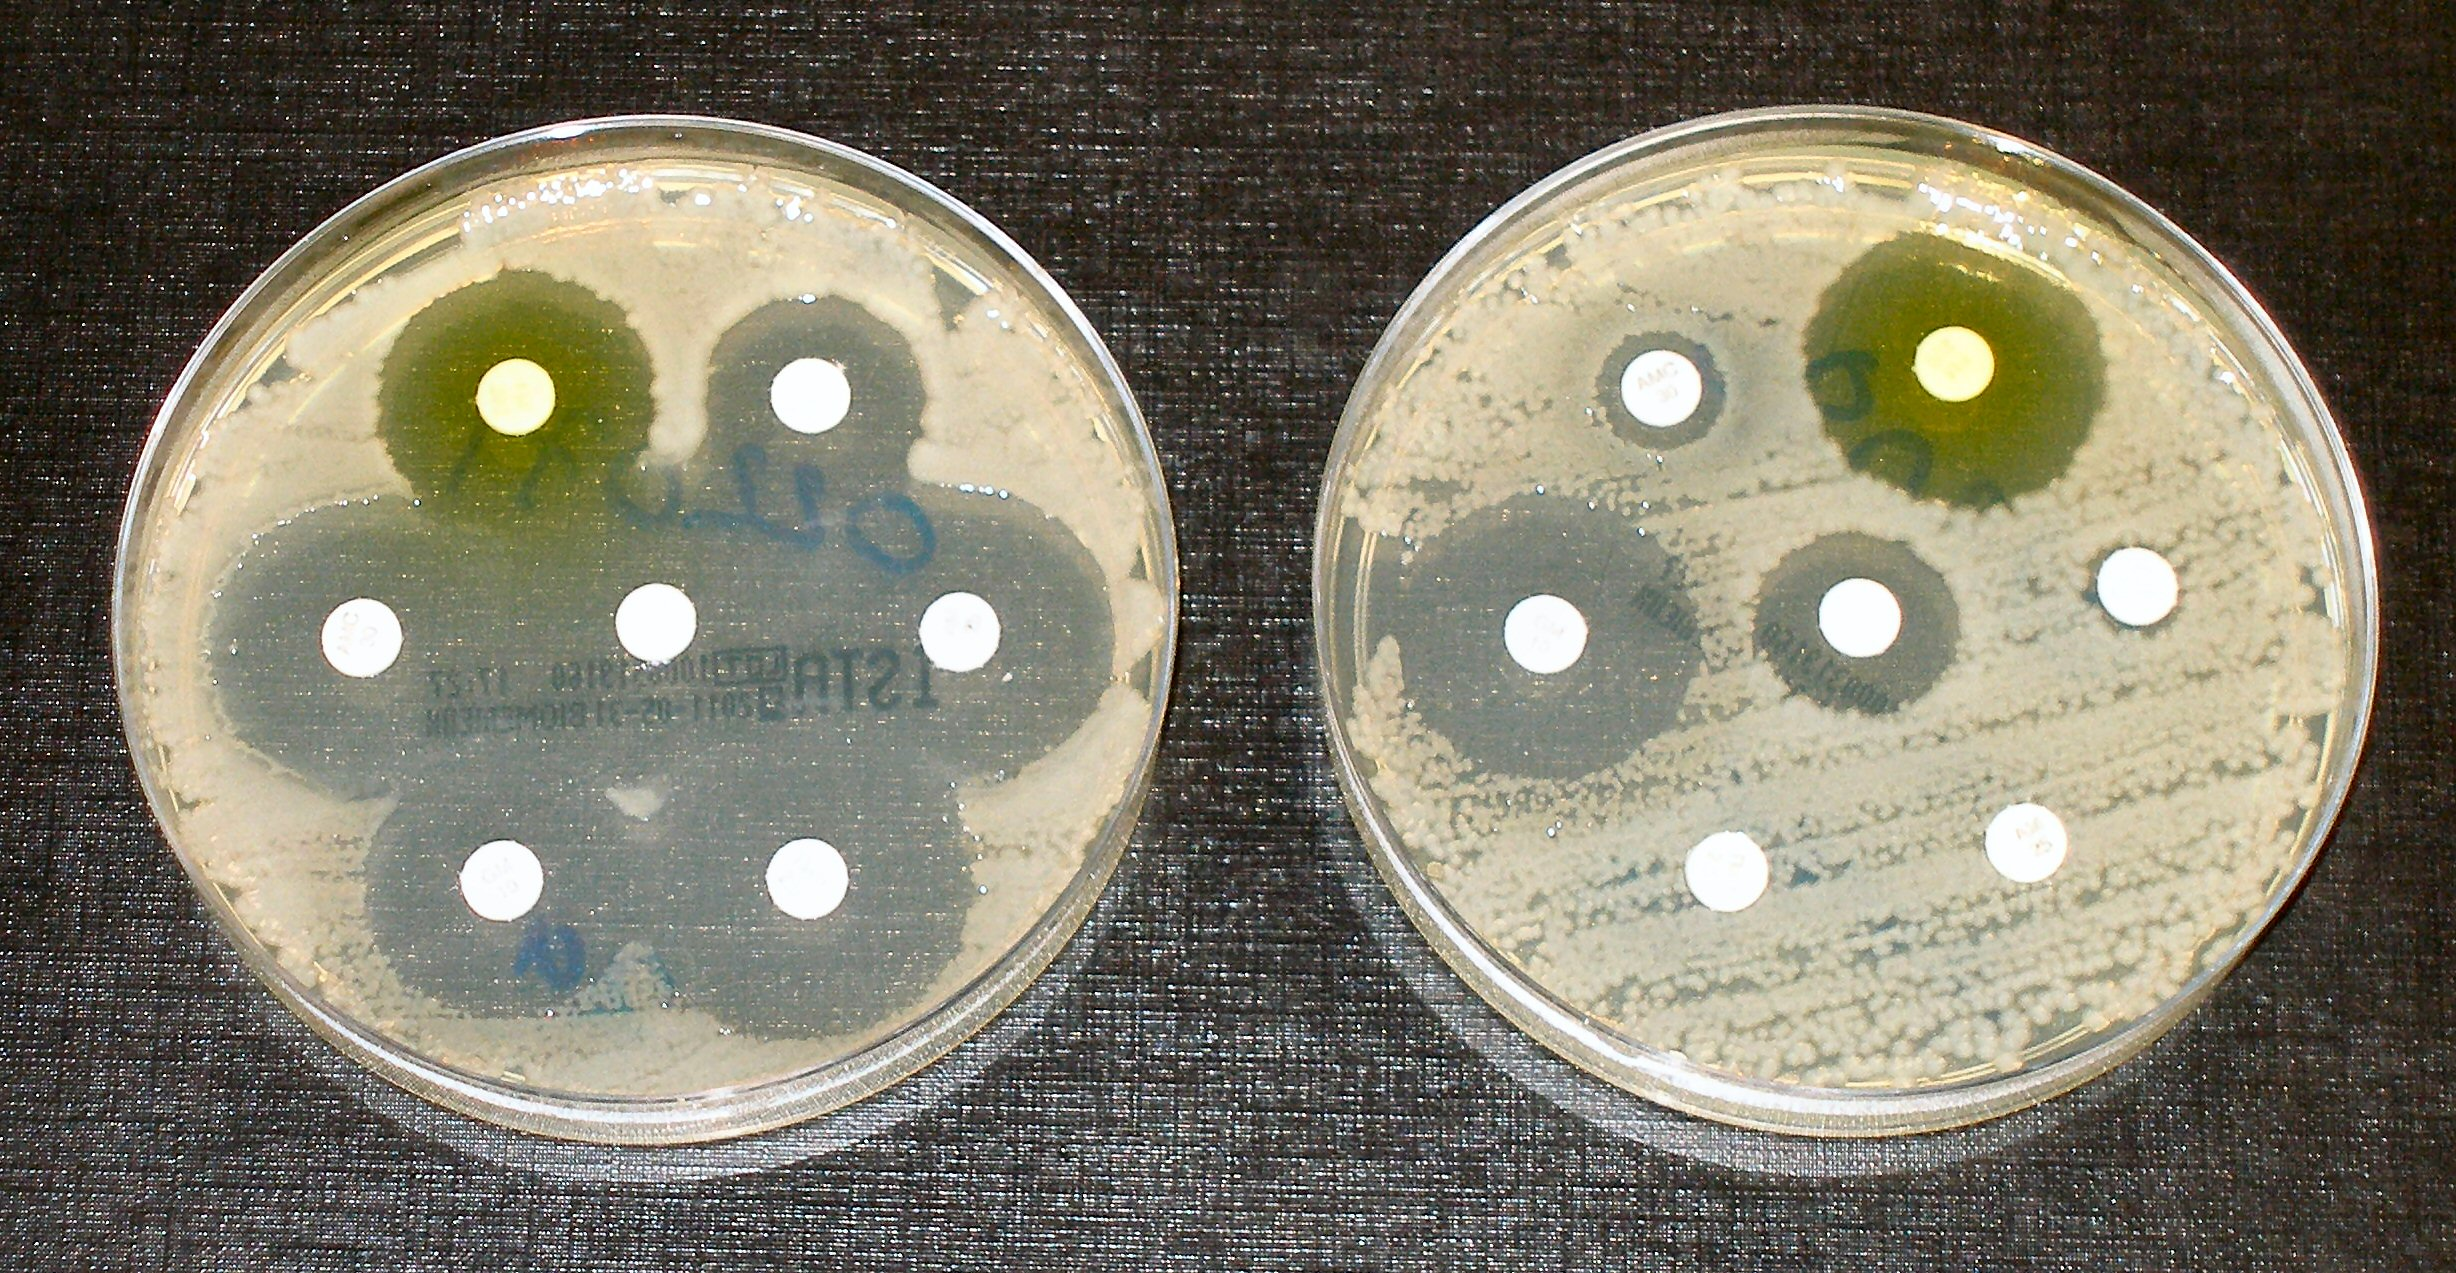 Antibiotic resistance tests; the bacteria in the culture on the left are sensitive to the antibiotics contained in the white paper discs. The bacteria on the right are resistant to most of the antibiotics. (Dr Graham Beards/Wikimedia Commons)